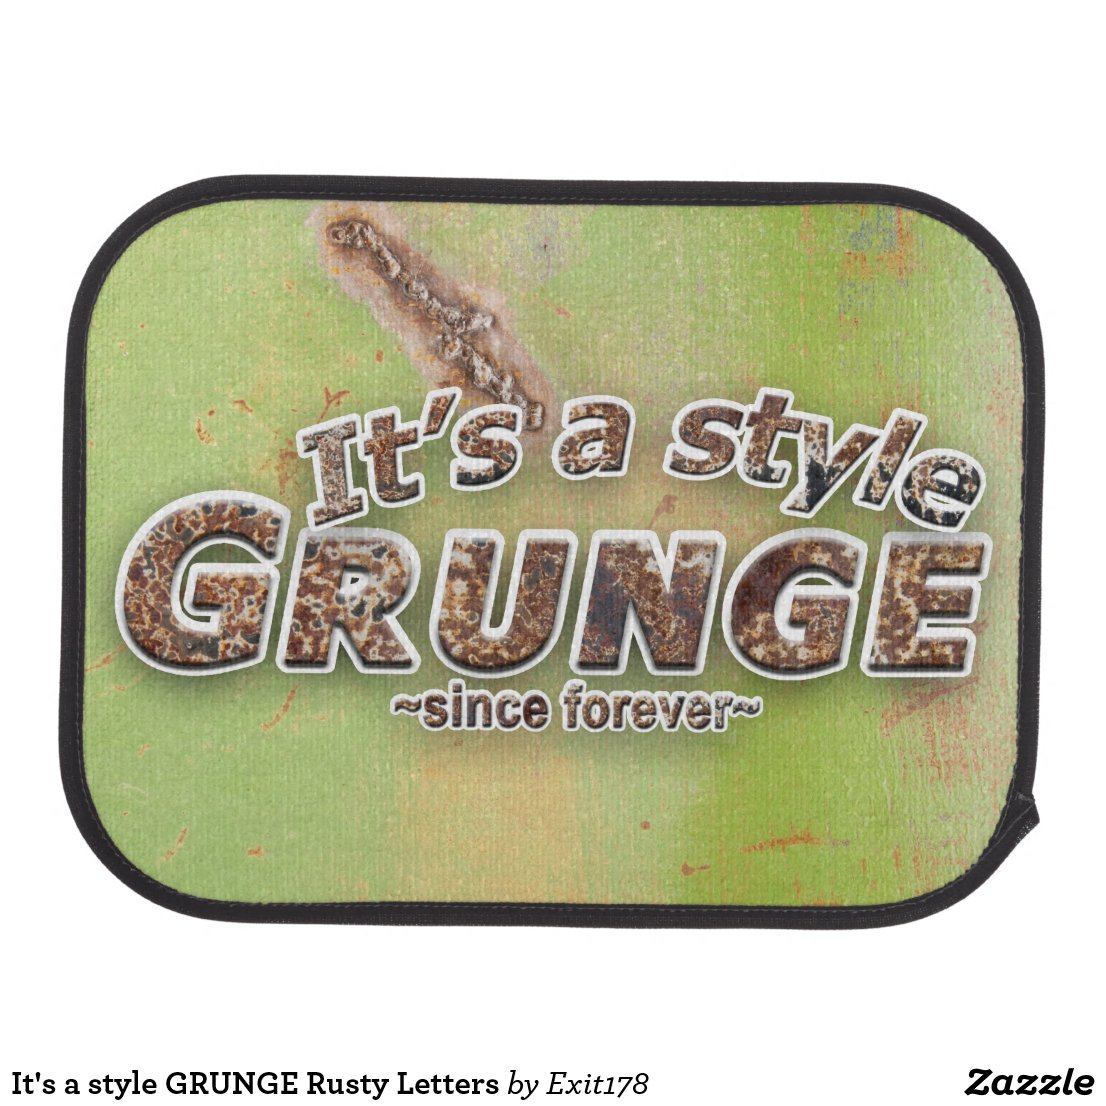 It's a style GRUNGE Rusty Letters Car Mat